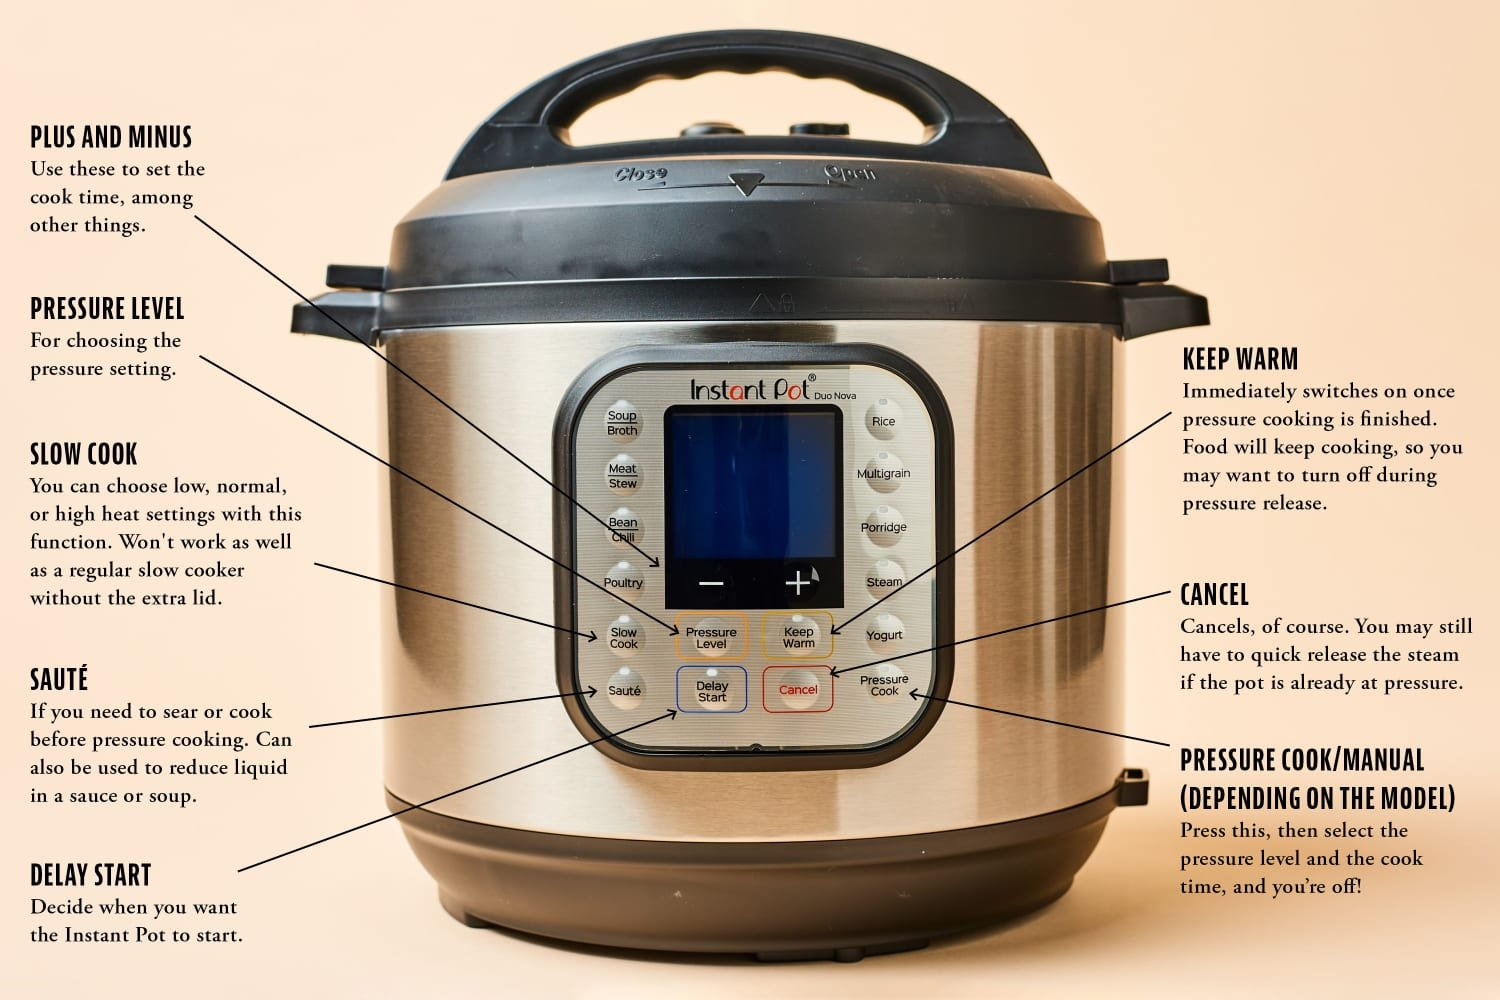 The Top 100 Instant Pot Questions Answered: Recipes, What to Buy & More | Kitchn